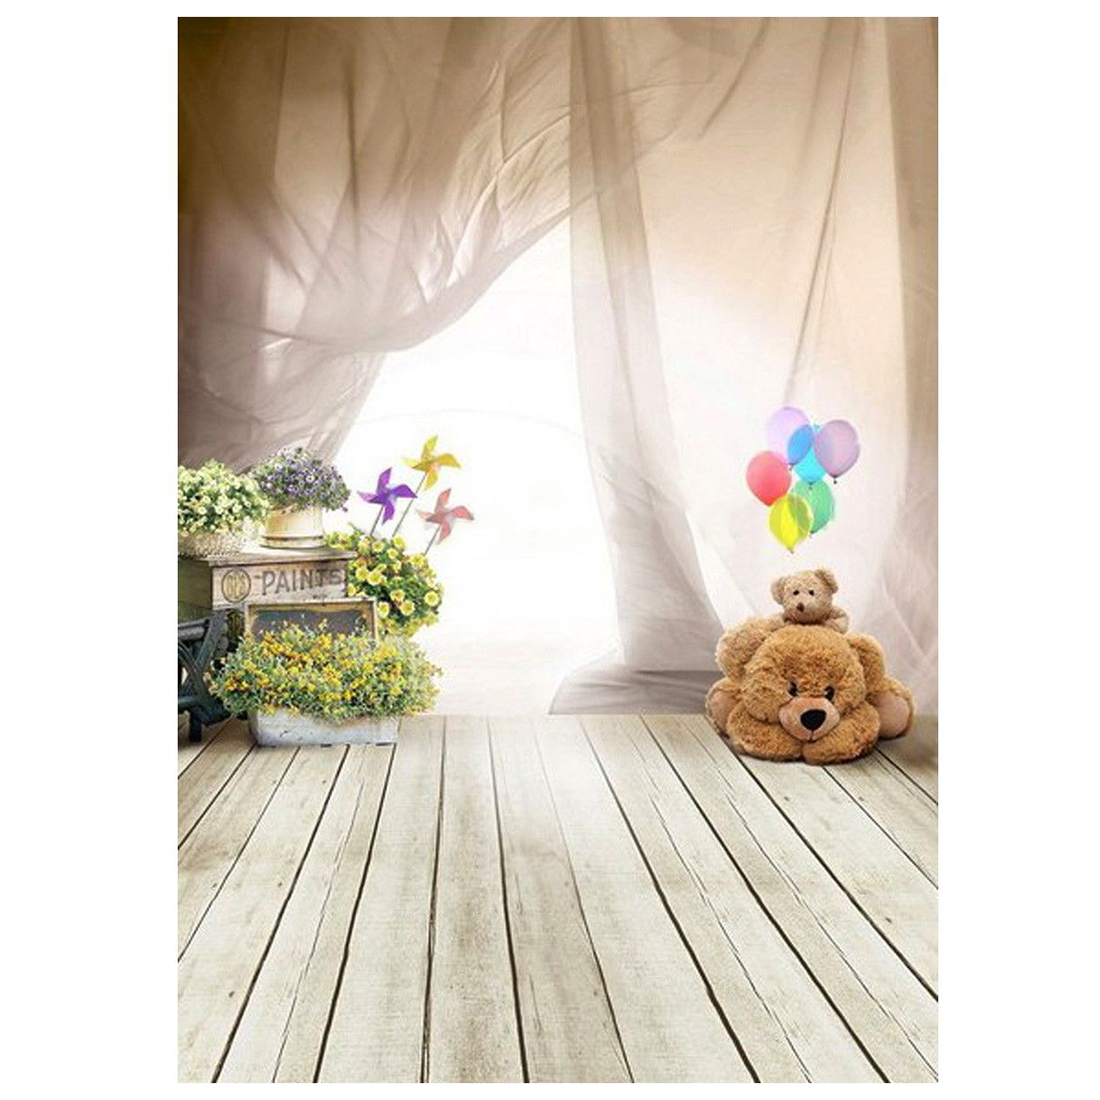 EDT-1m x 1.5m Lovely Bear Floor Balloon Studio Backdrops Children Photography Background 10pcs m6 16mm m6 16mm 316 ss stainless steel mushroom head sttp screw self tapping screw truss phil screws